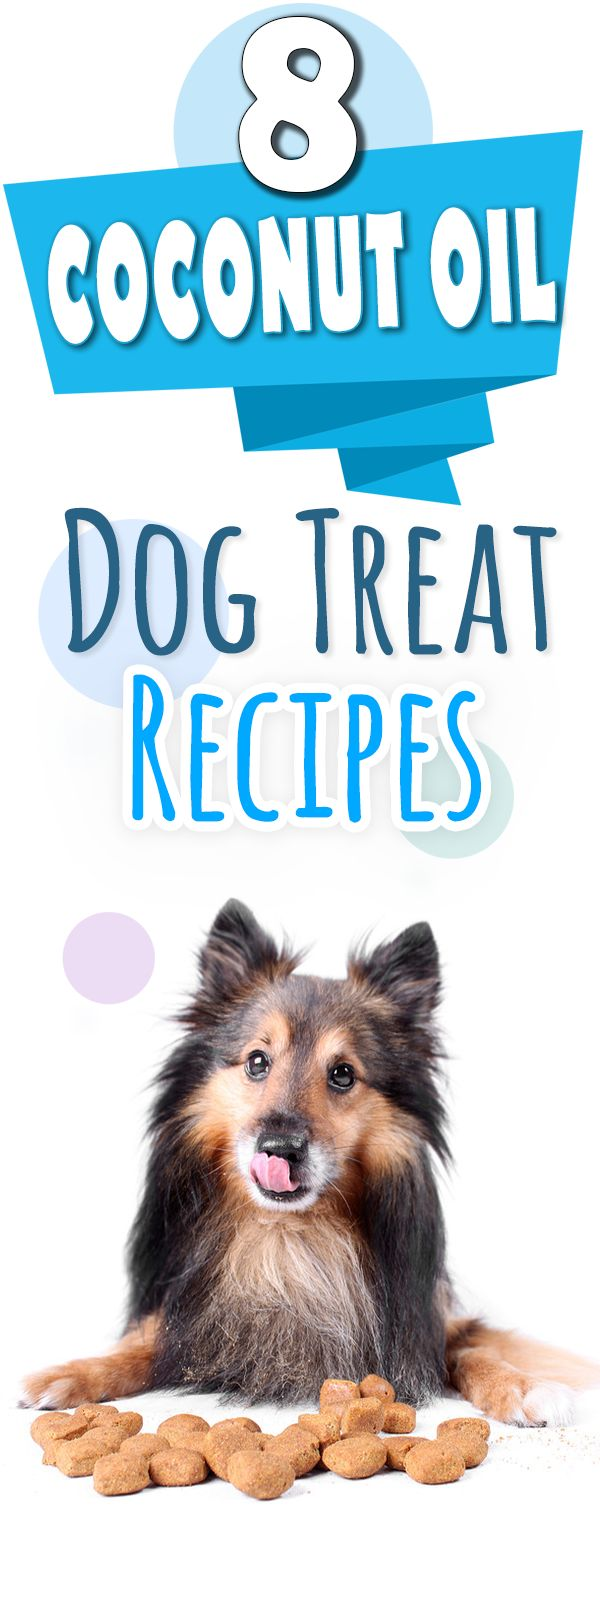 Coconut oil has SO many health benefits for your dog! This is an awesome list of easy homemade coconut oil recipes for dog treats.